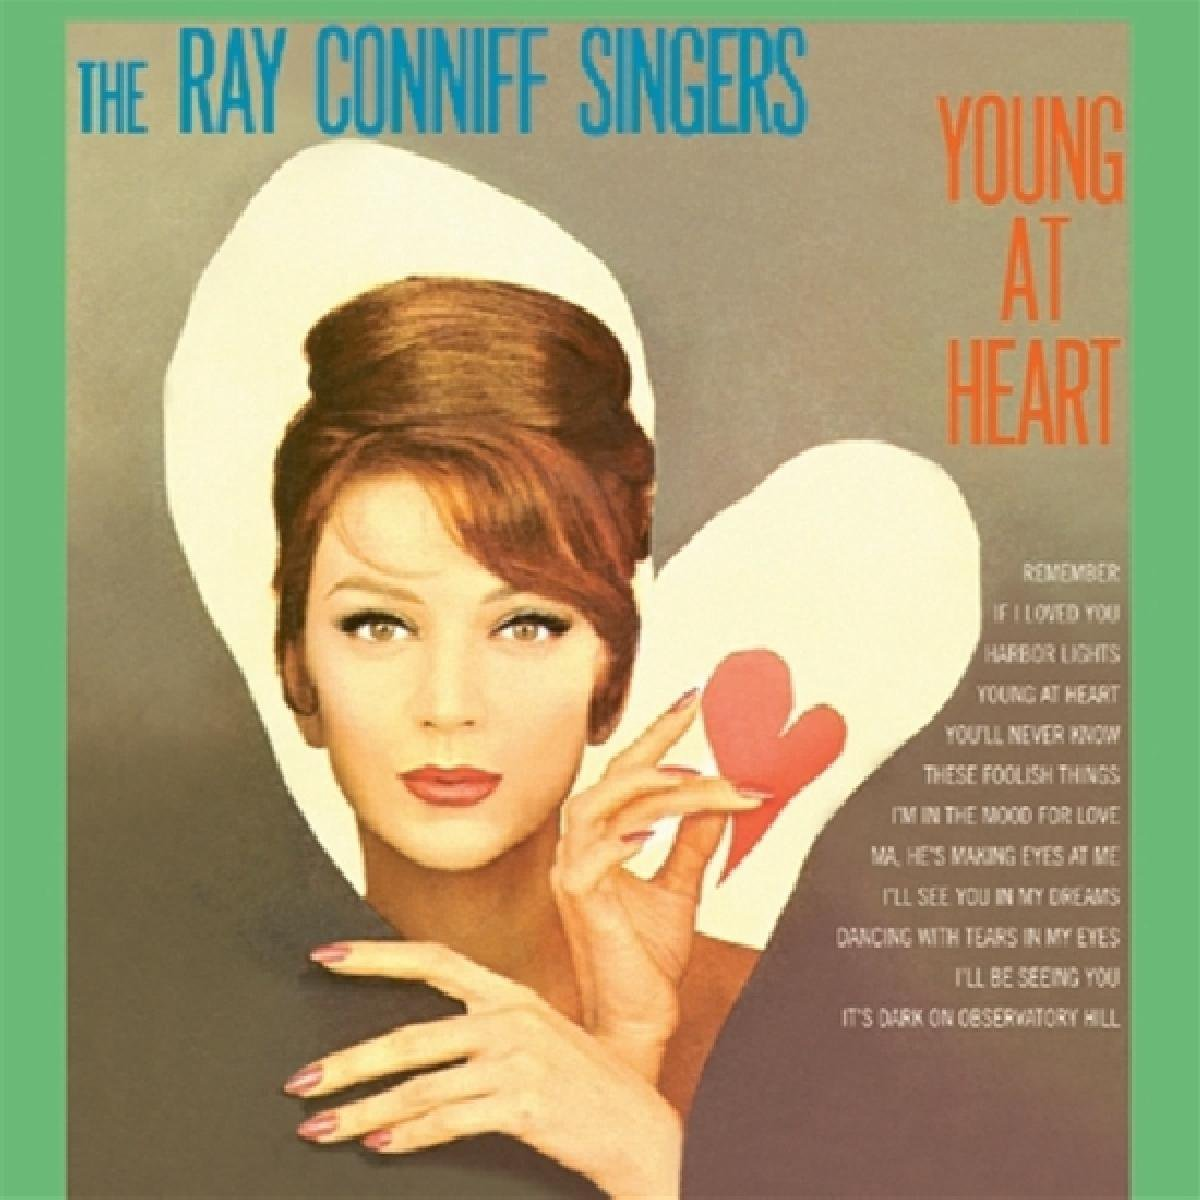 Ray Conniff Singers (The) - Young At Heart - Ray -Singers- Conniff